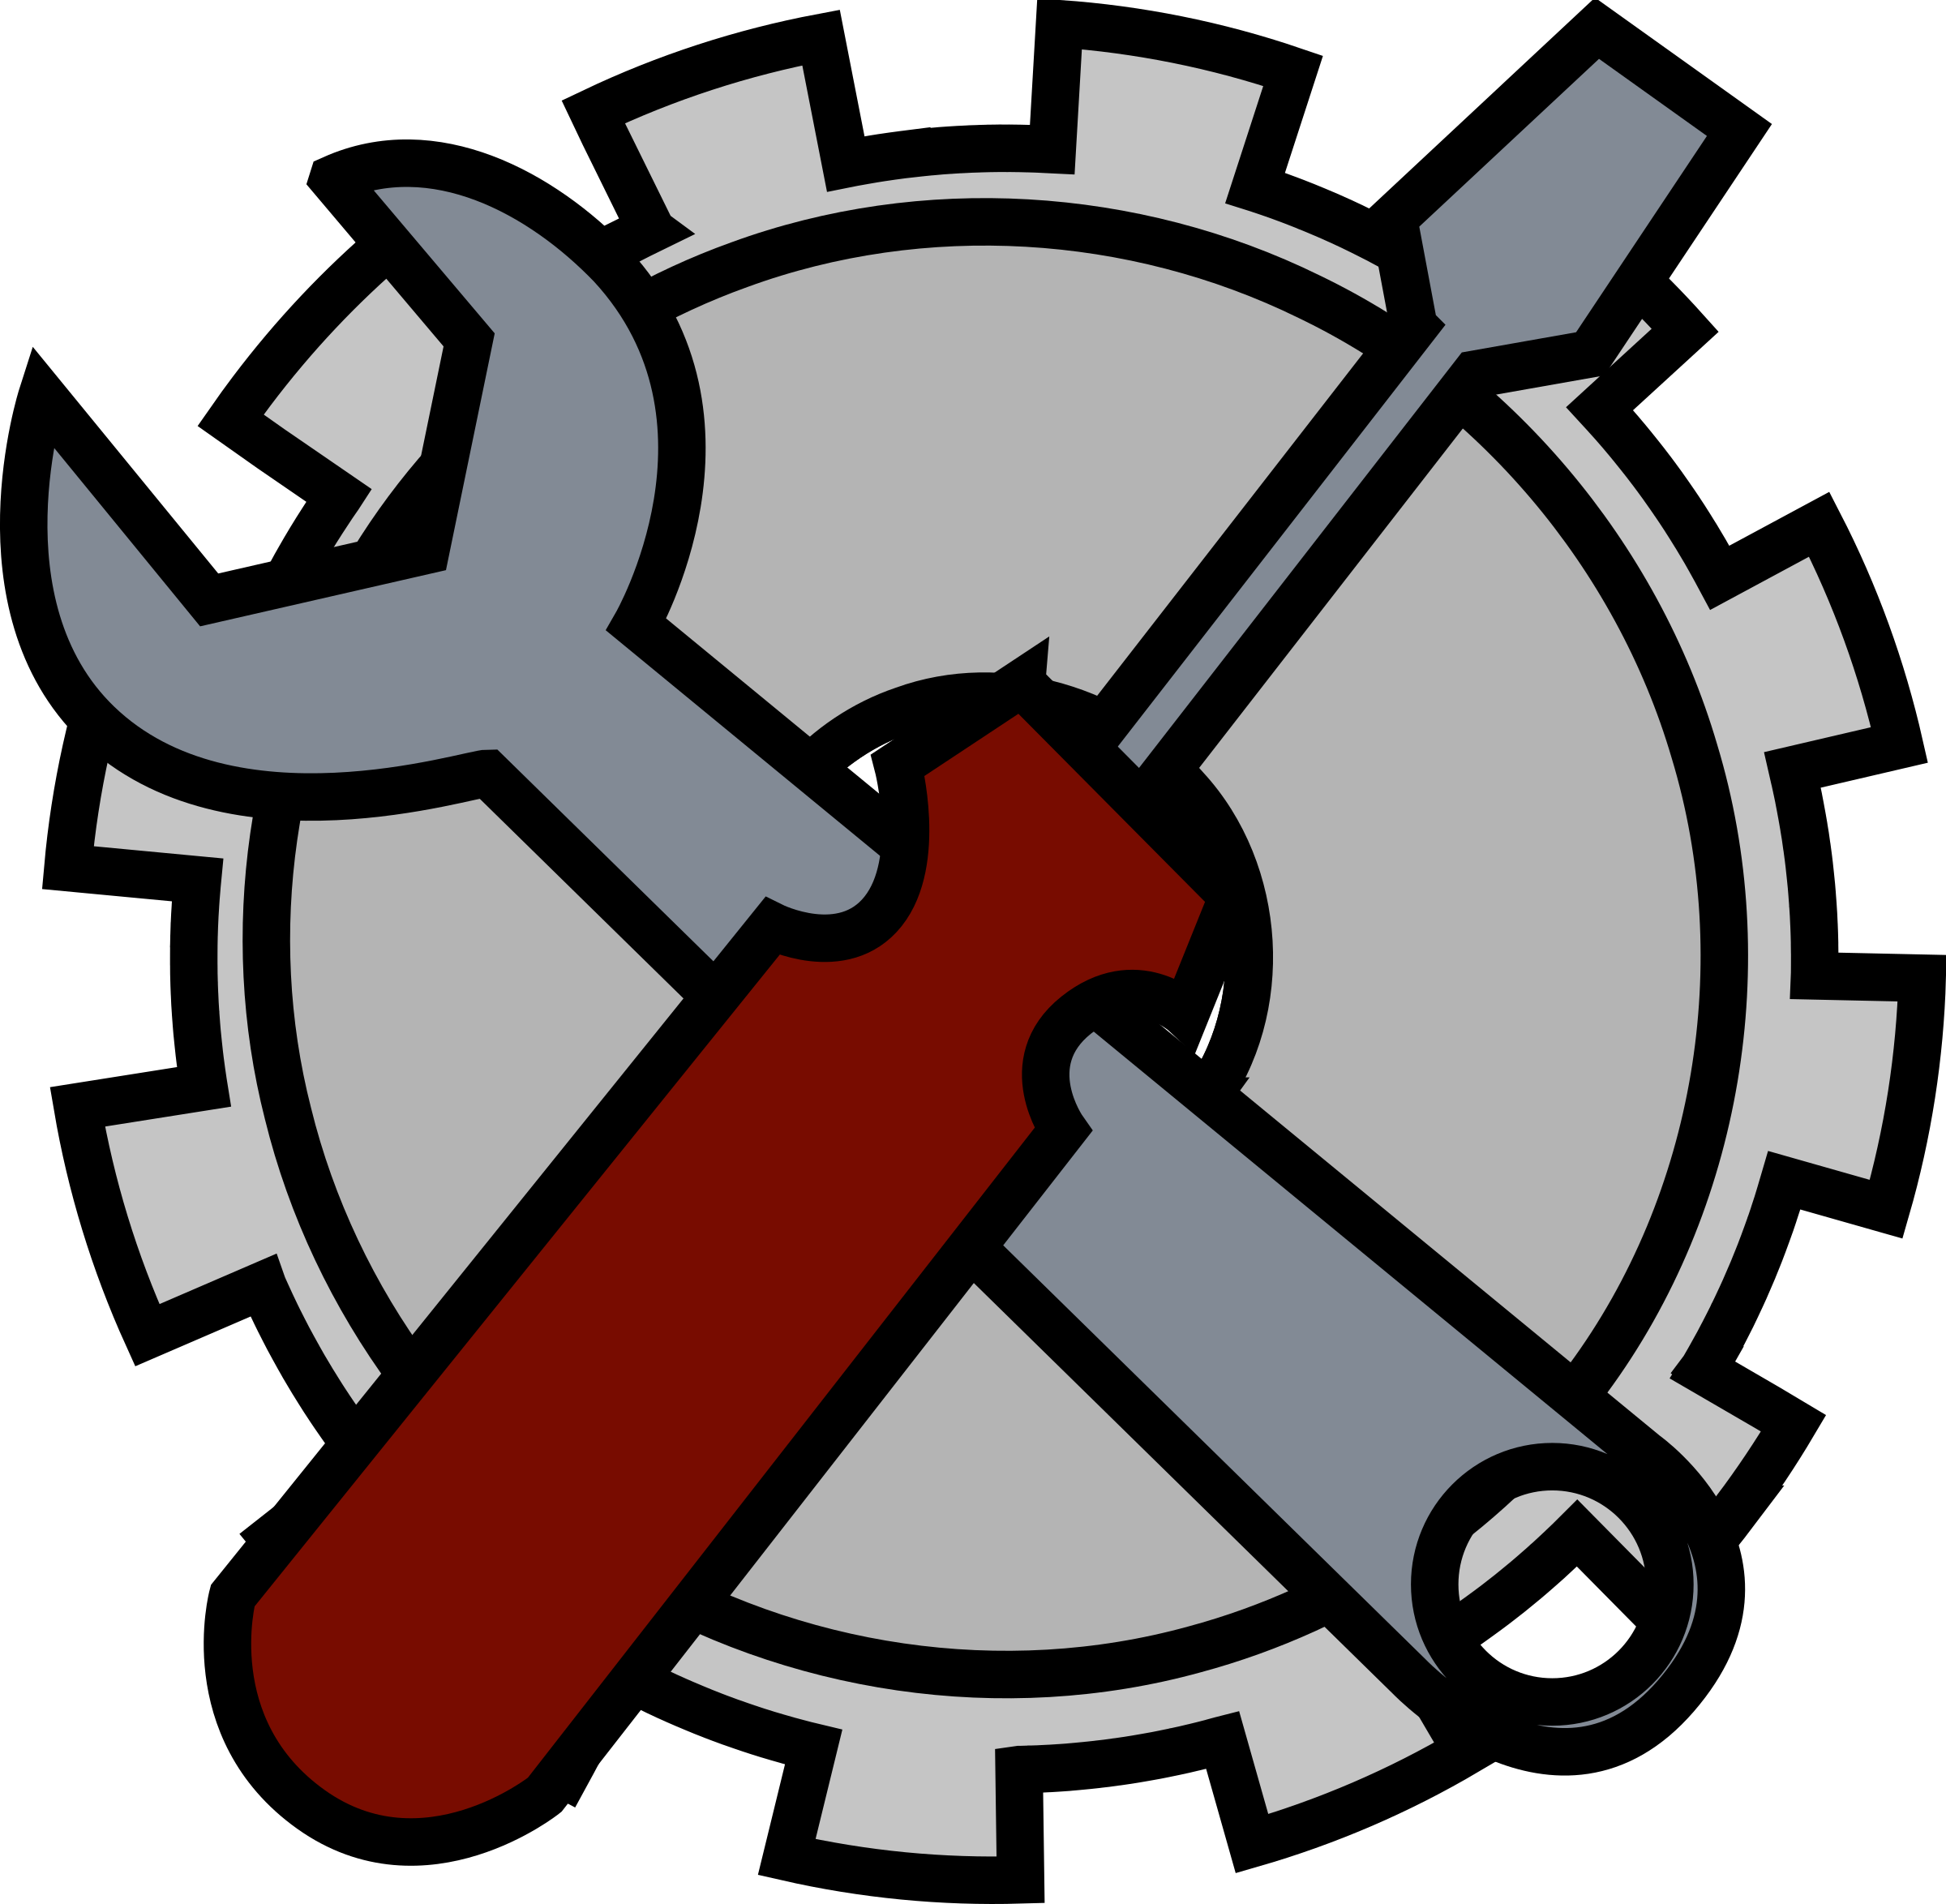 Admin tools icon by darth_schmoo